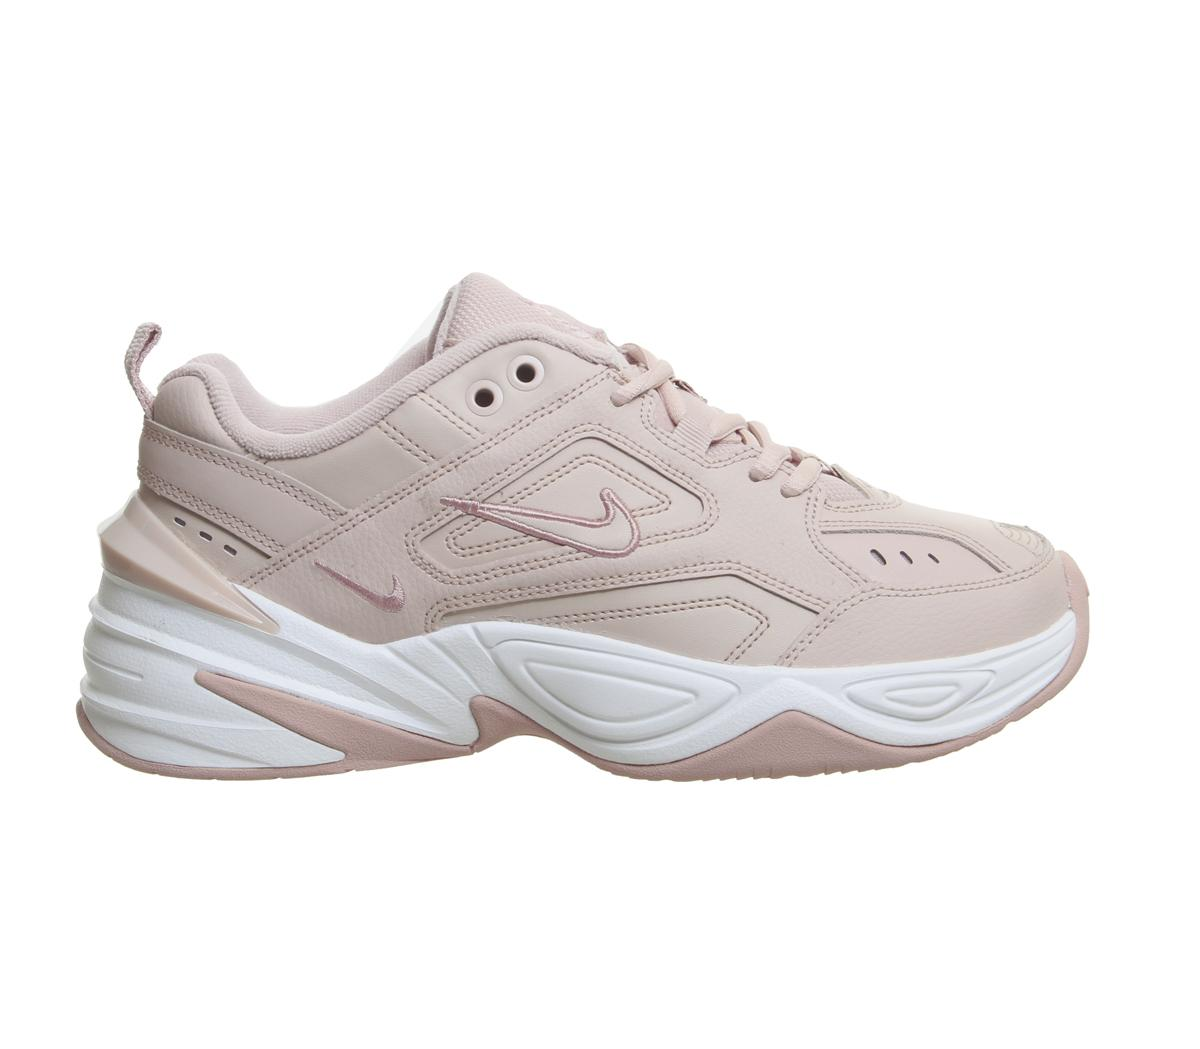 Nike M2k Tekno Trainers Particle Beige